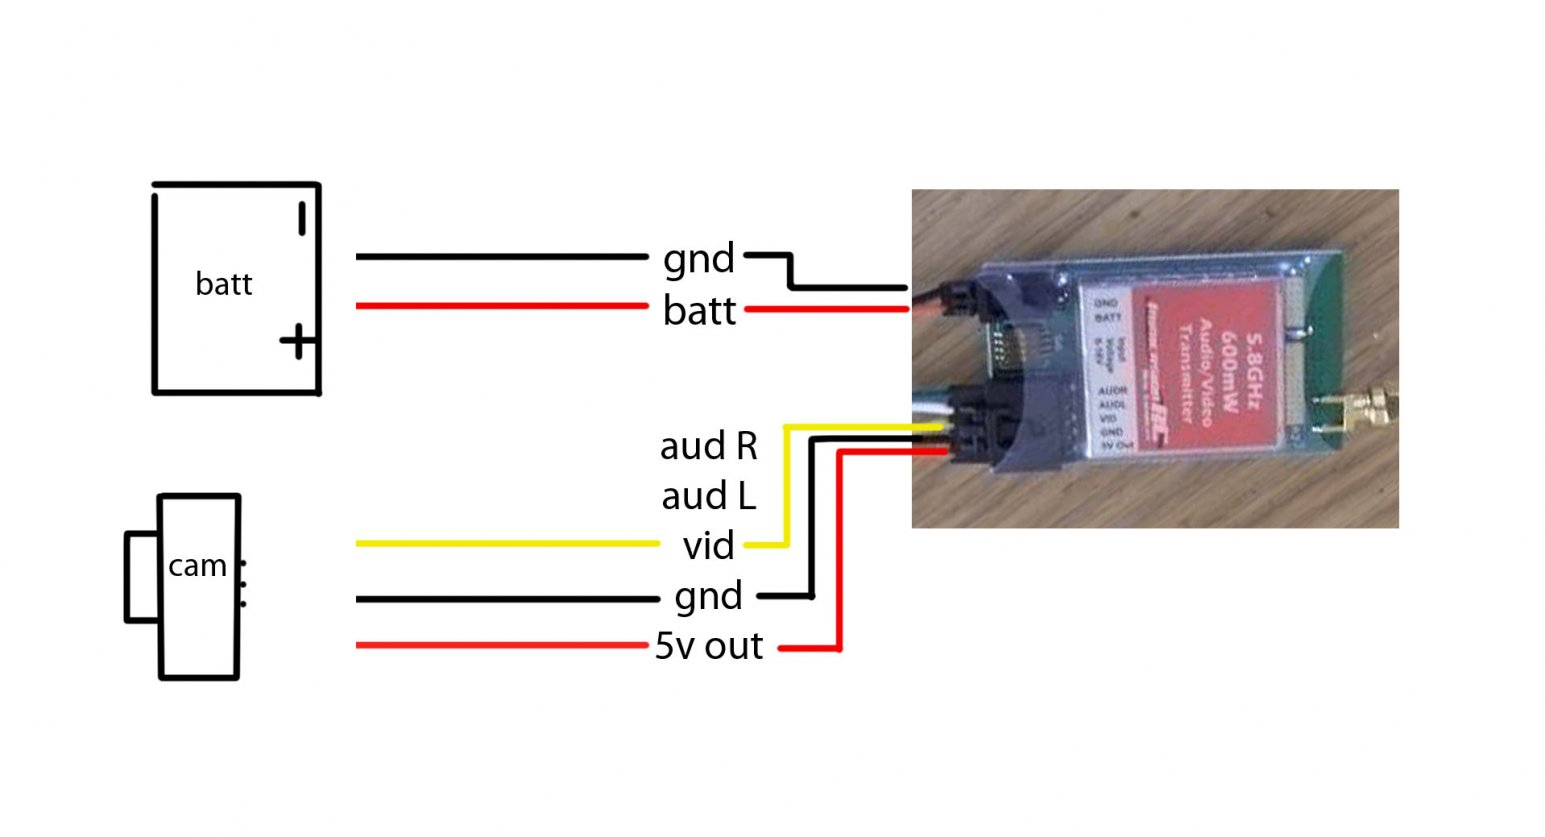 Fpv Wiring Diagram For 600mw 5 8 Transmitter Explained Diagrams Burned Out After Iosd Install Dji Phantom Drone Forum